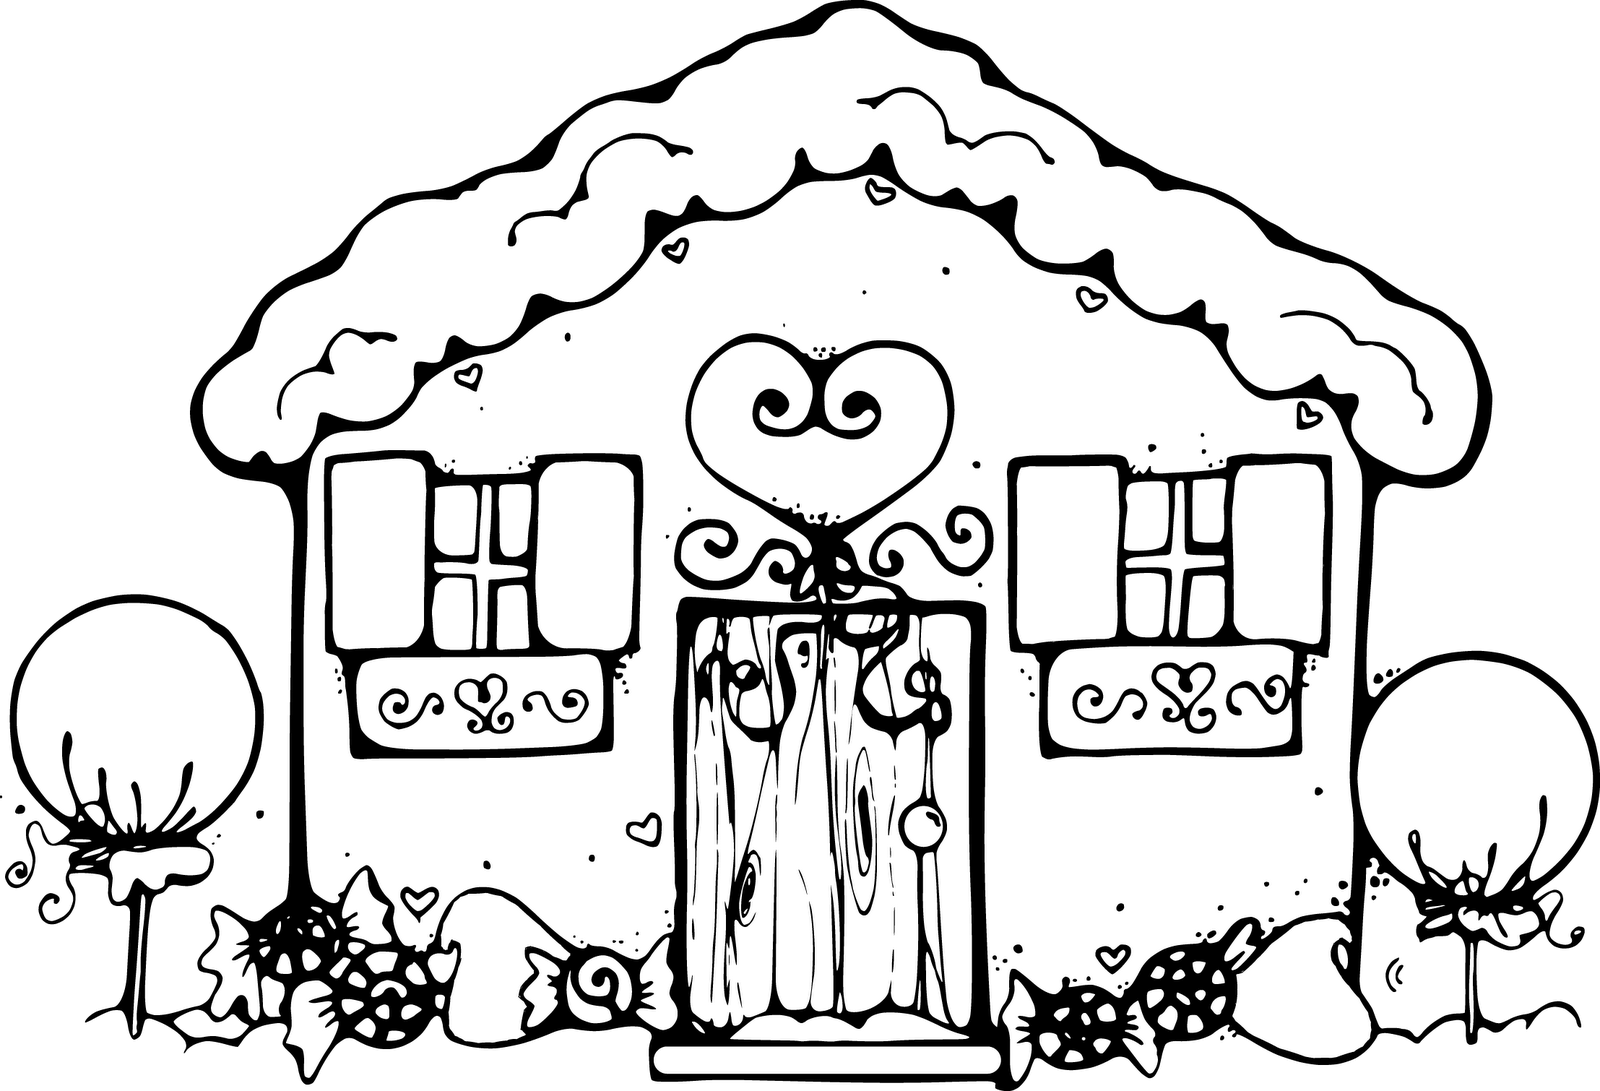 gingerbread house coloring sheet breathtaking gingerbread house coloring page pdf gingerbread coloring house sheet